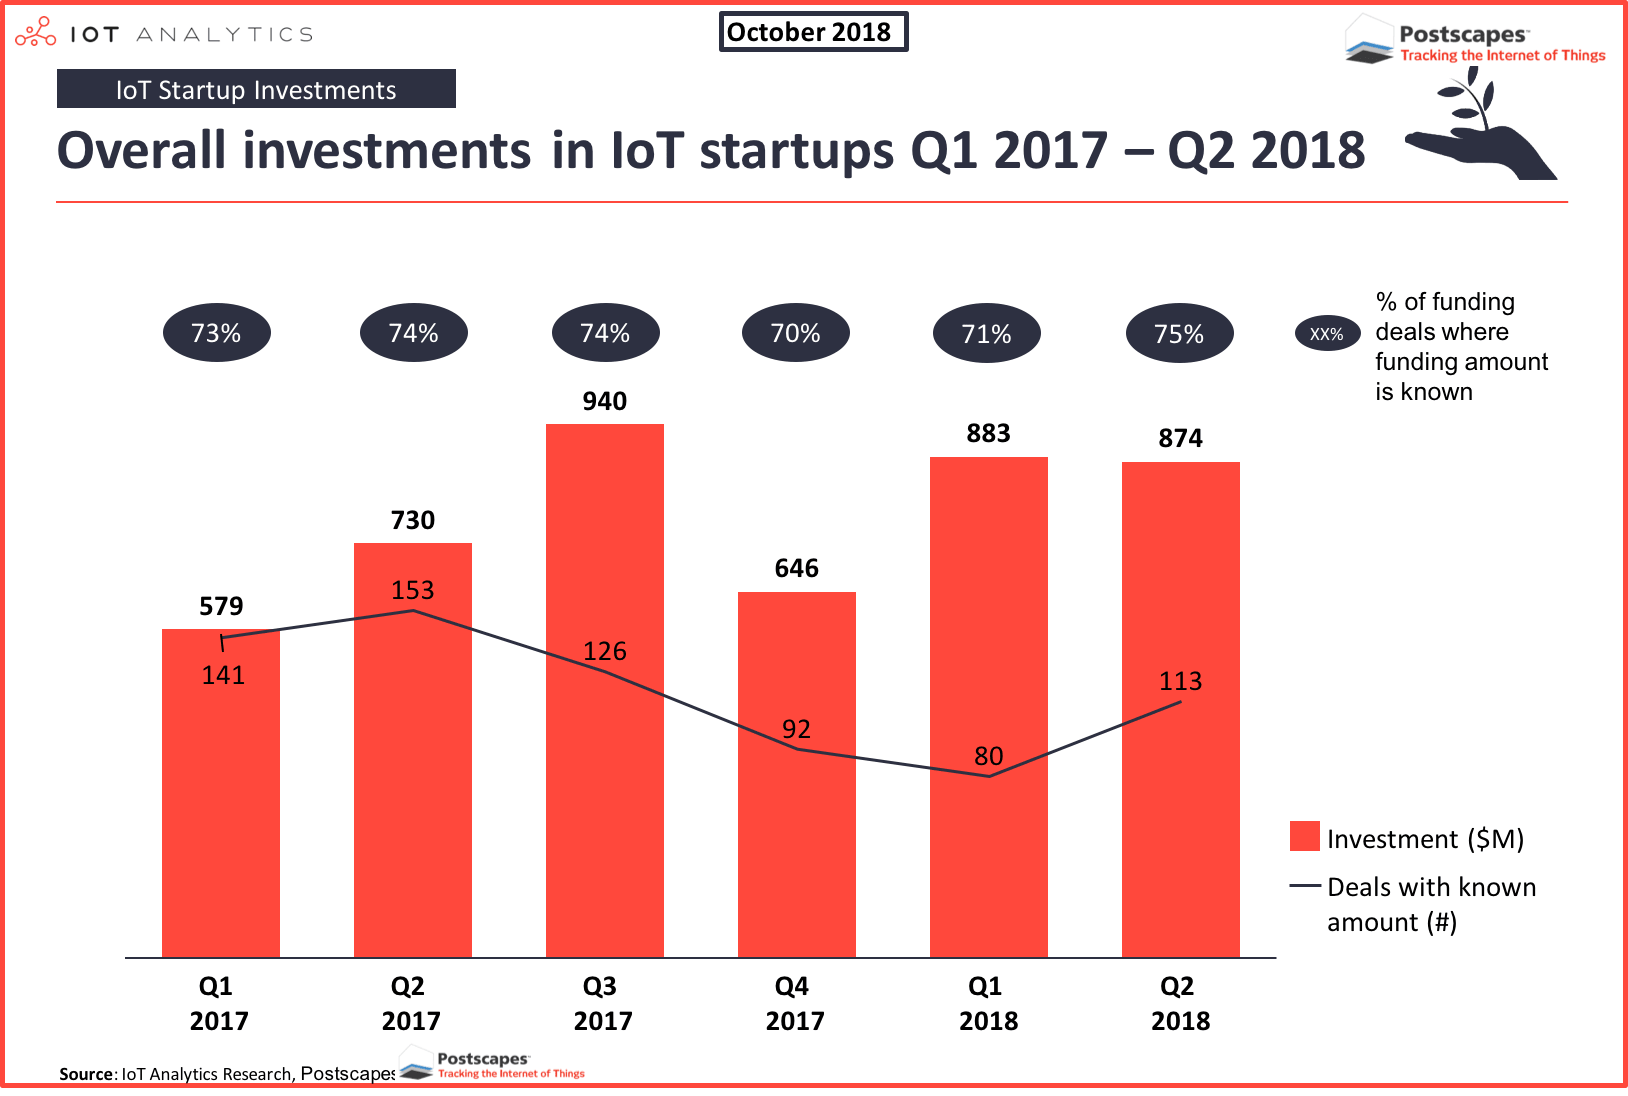 IoT Investments Trends 2017 - 2018